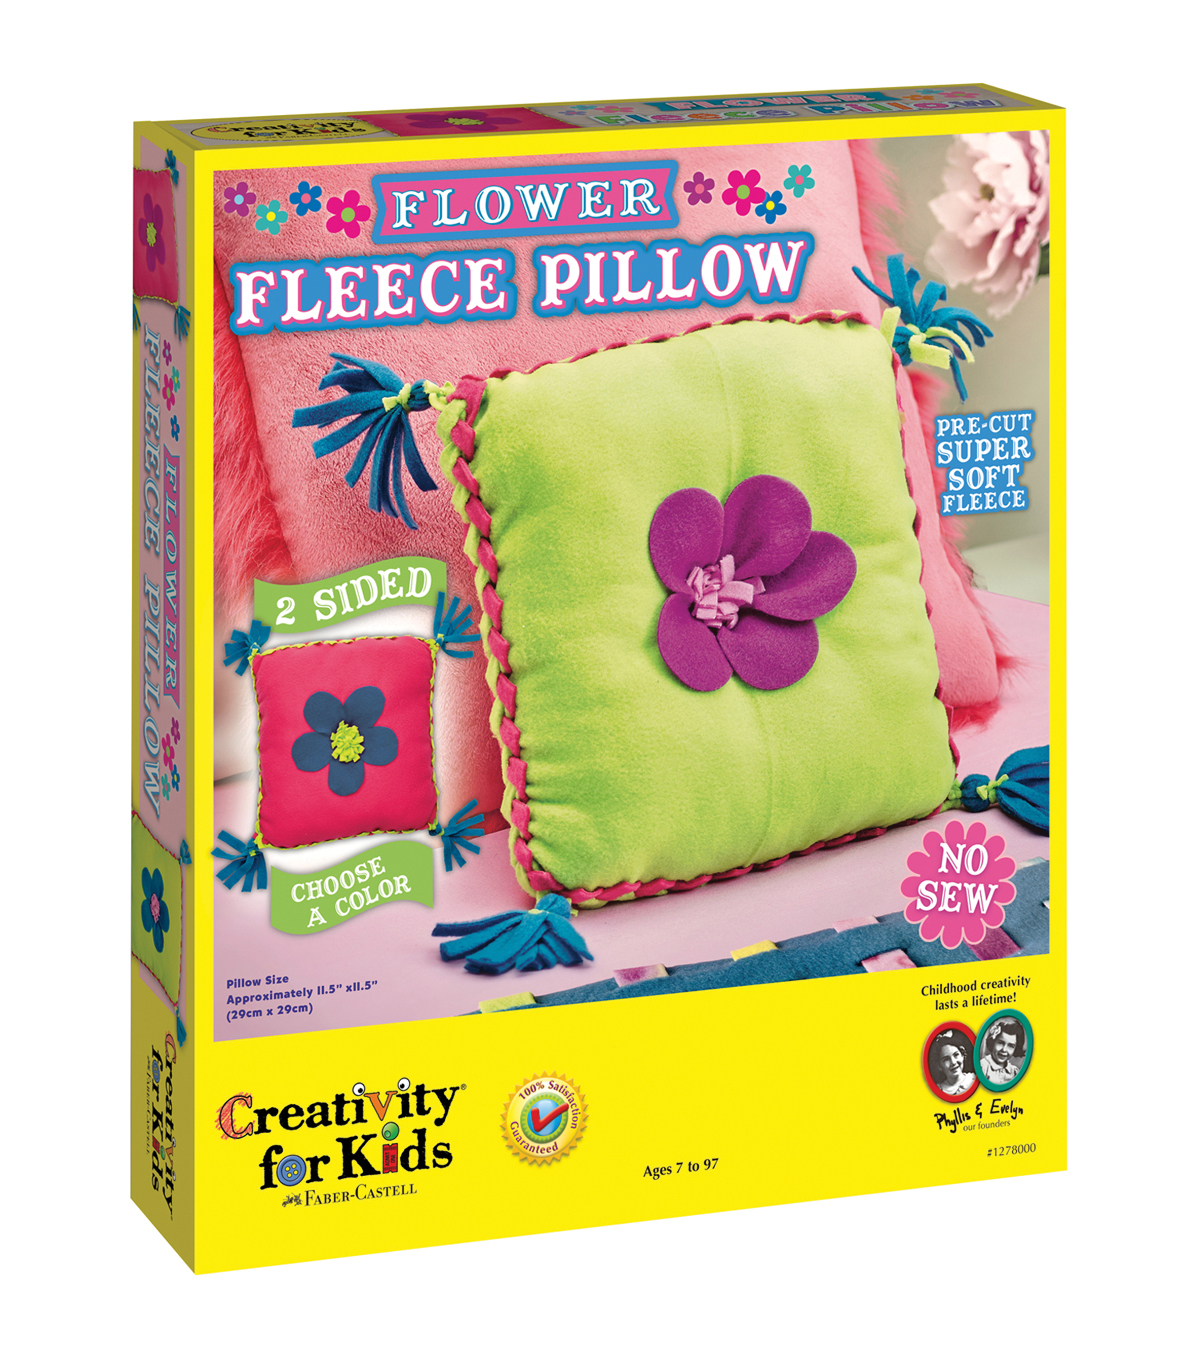 Creativity for Kids® Flower Fleece Pillow Kit